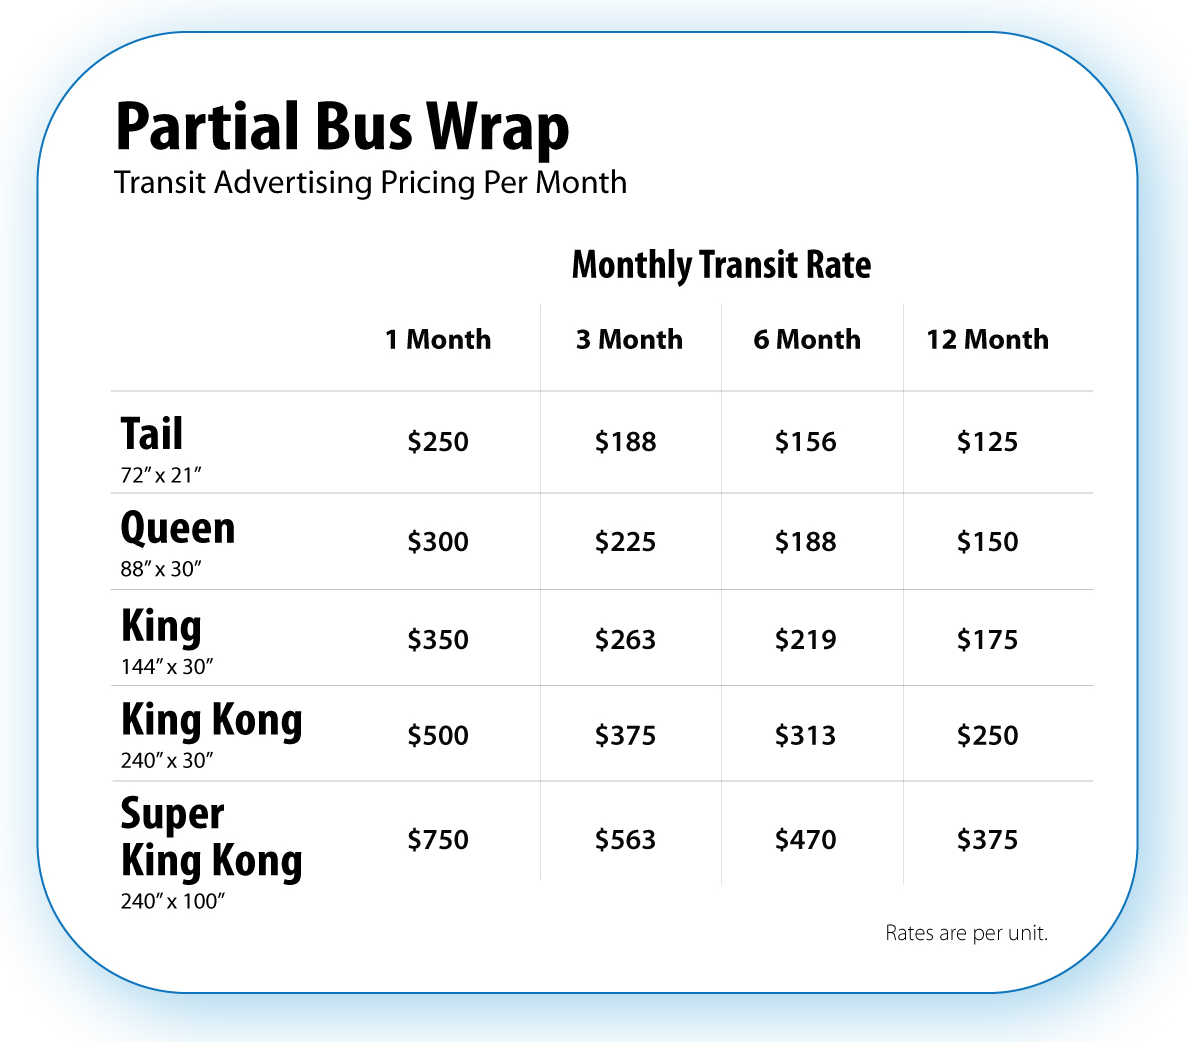 Partial Wrap Transit Advertising Pricing